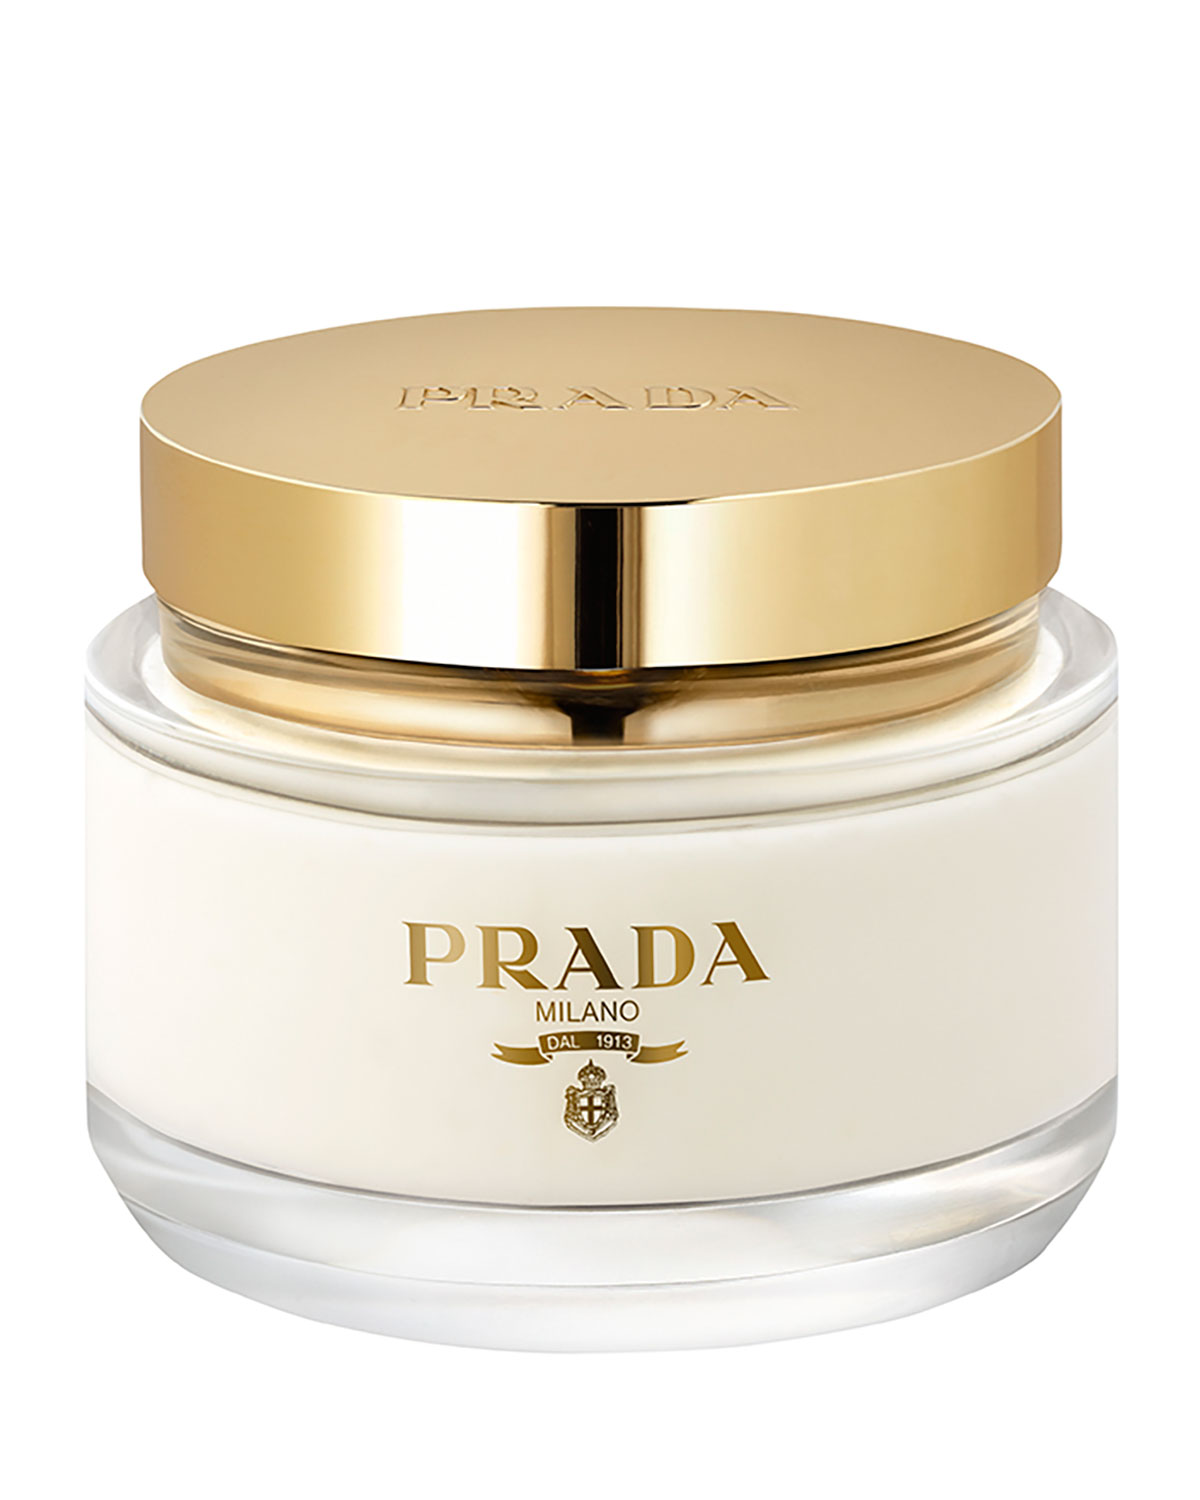 Prada La Femme Prada Body Cream, 200 mL